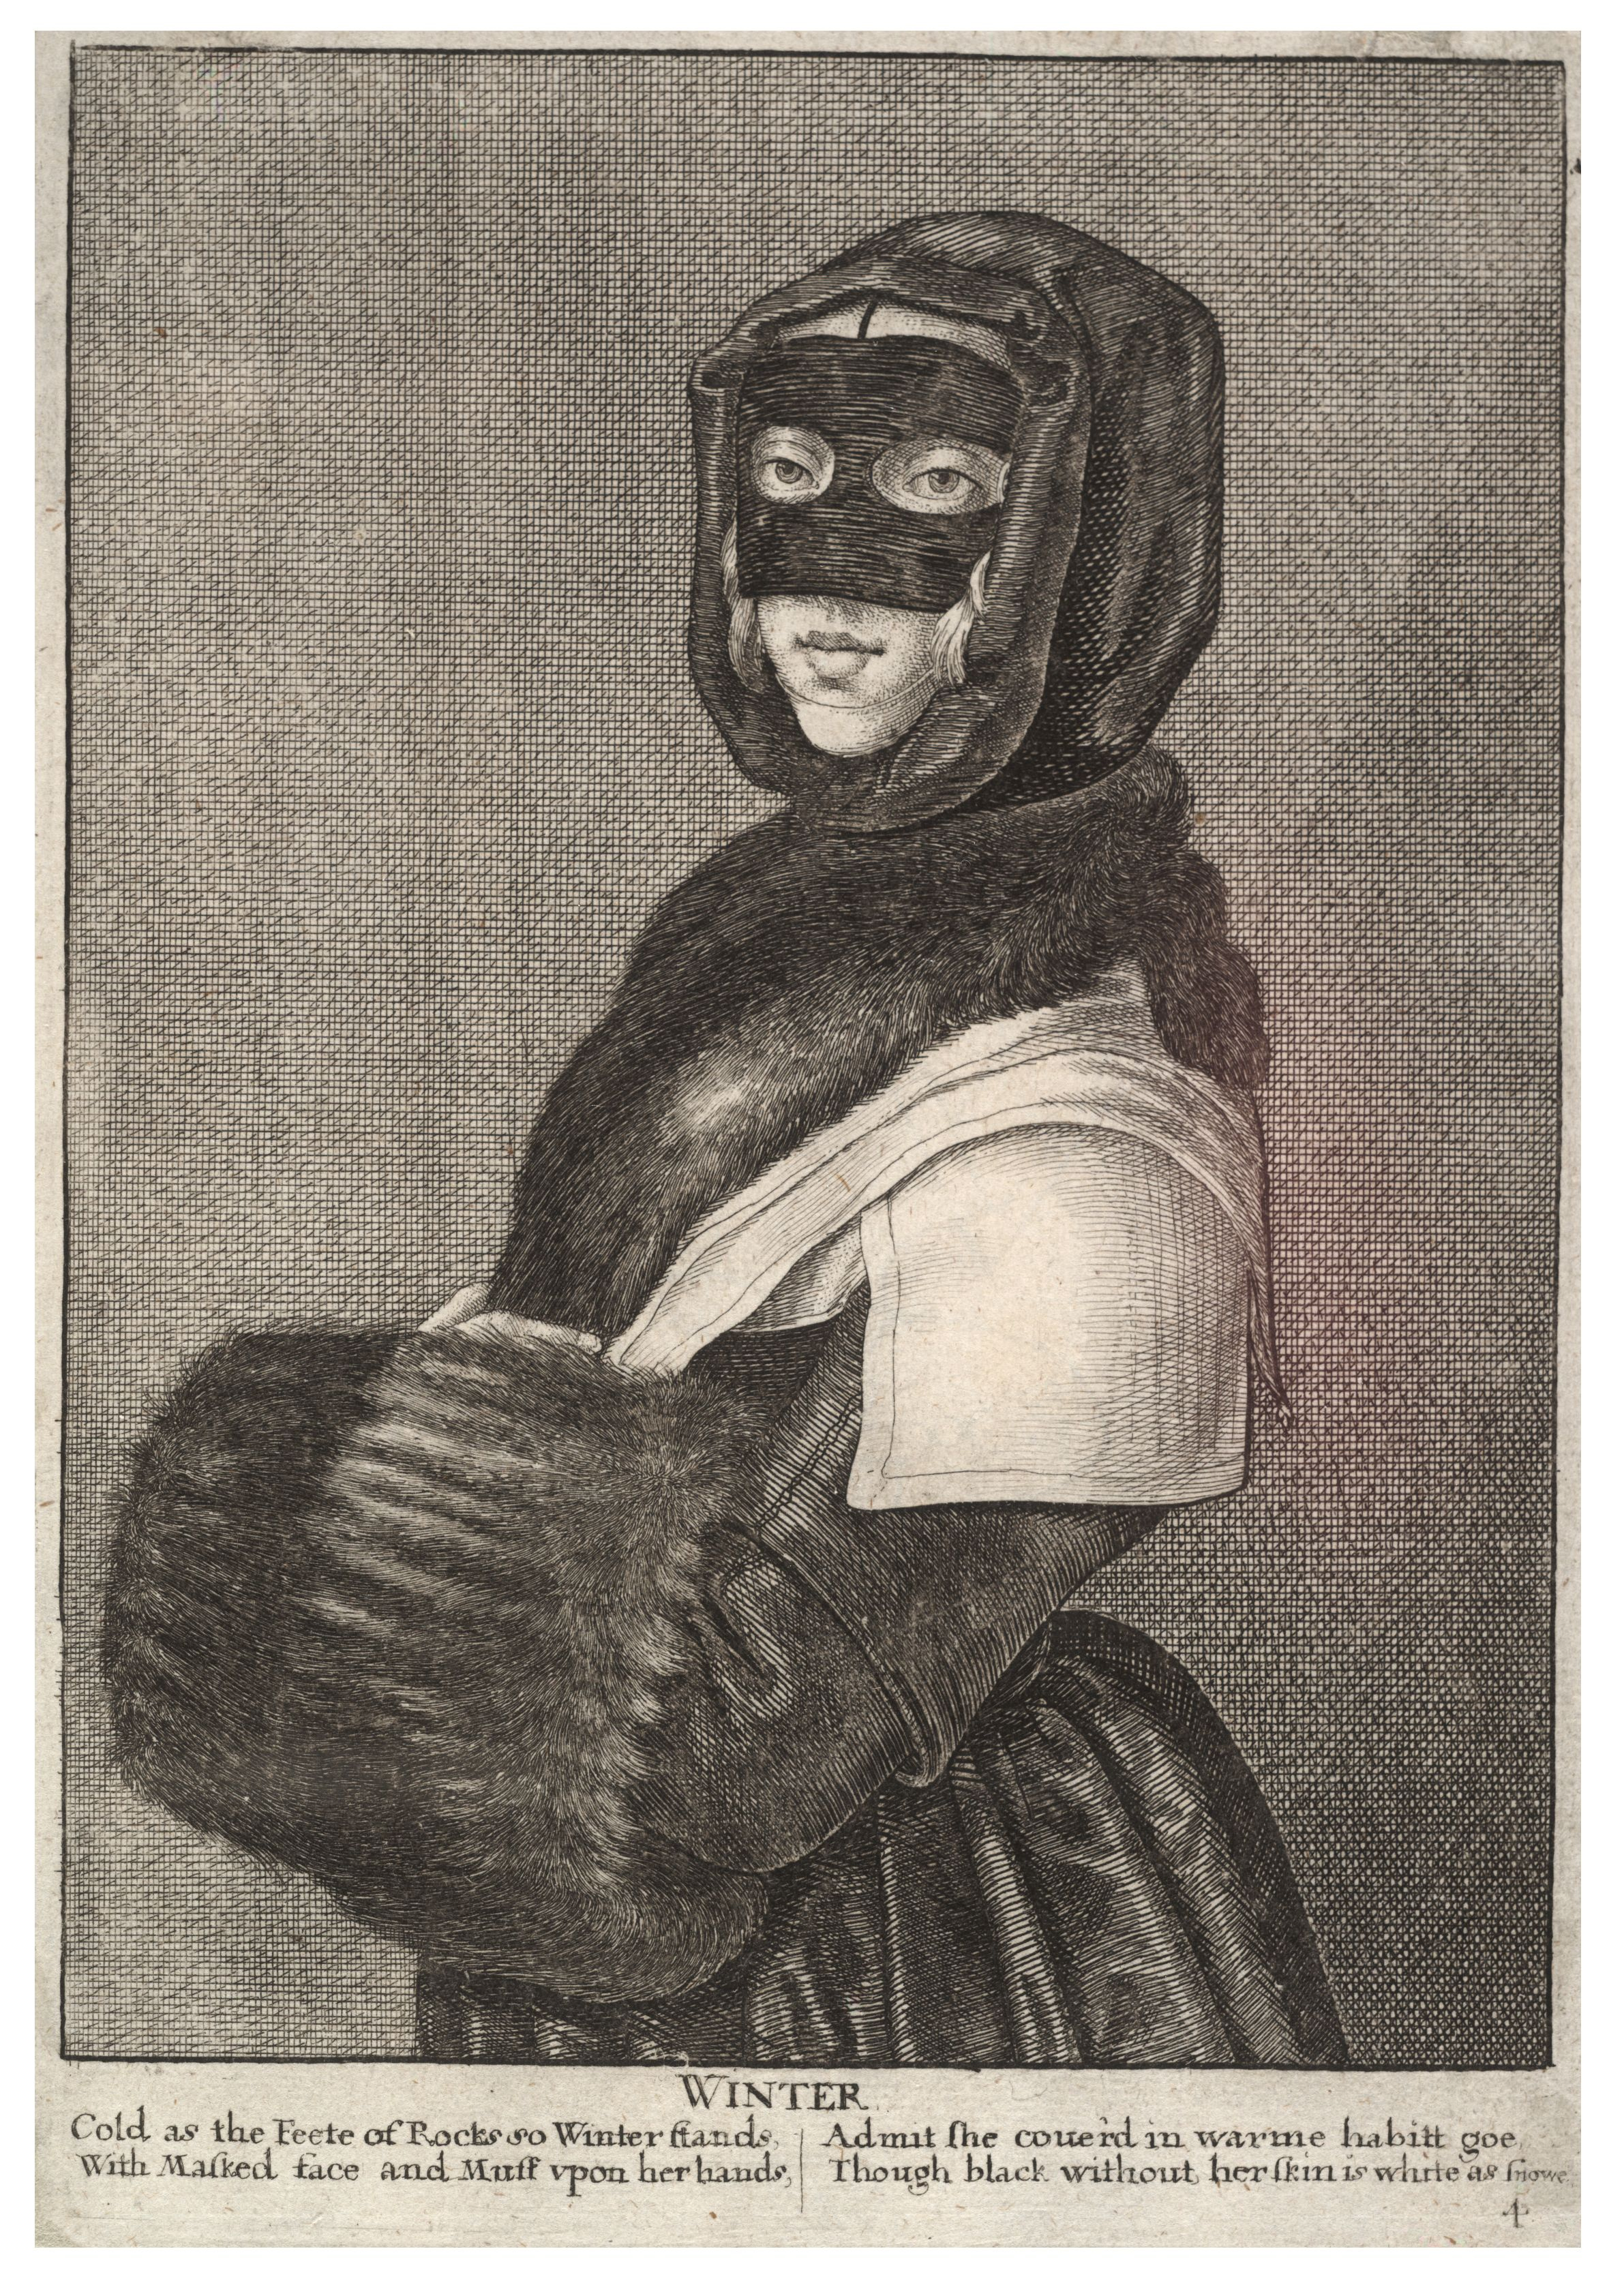 A seventeenth-century English woman wearing a mask and a carrying a fur muff, for cold weather. This image was engraved by the artist Wenceslaus Hollar in 1643.